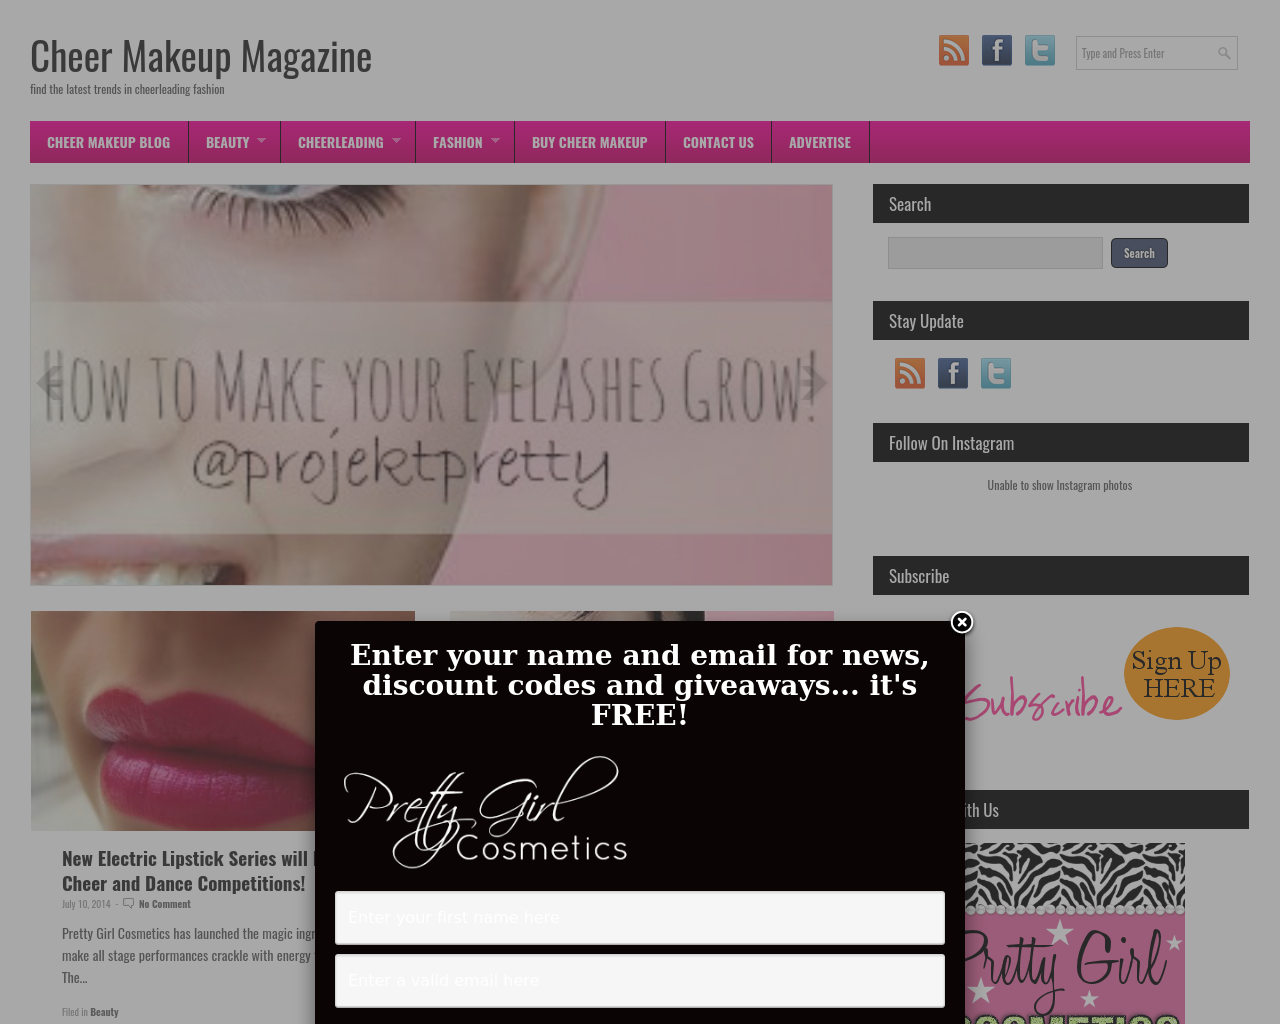 Cheer-Makeup-101-By-Pretty-Girl-Cosmetics-Advertising-Reviews-Pricing